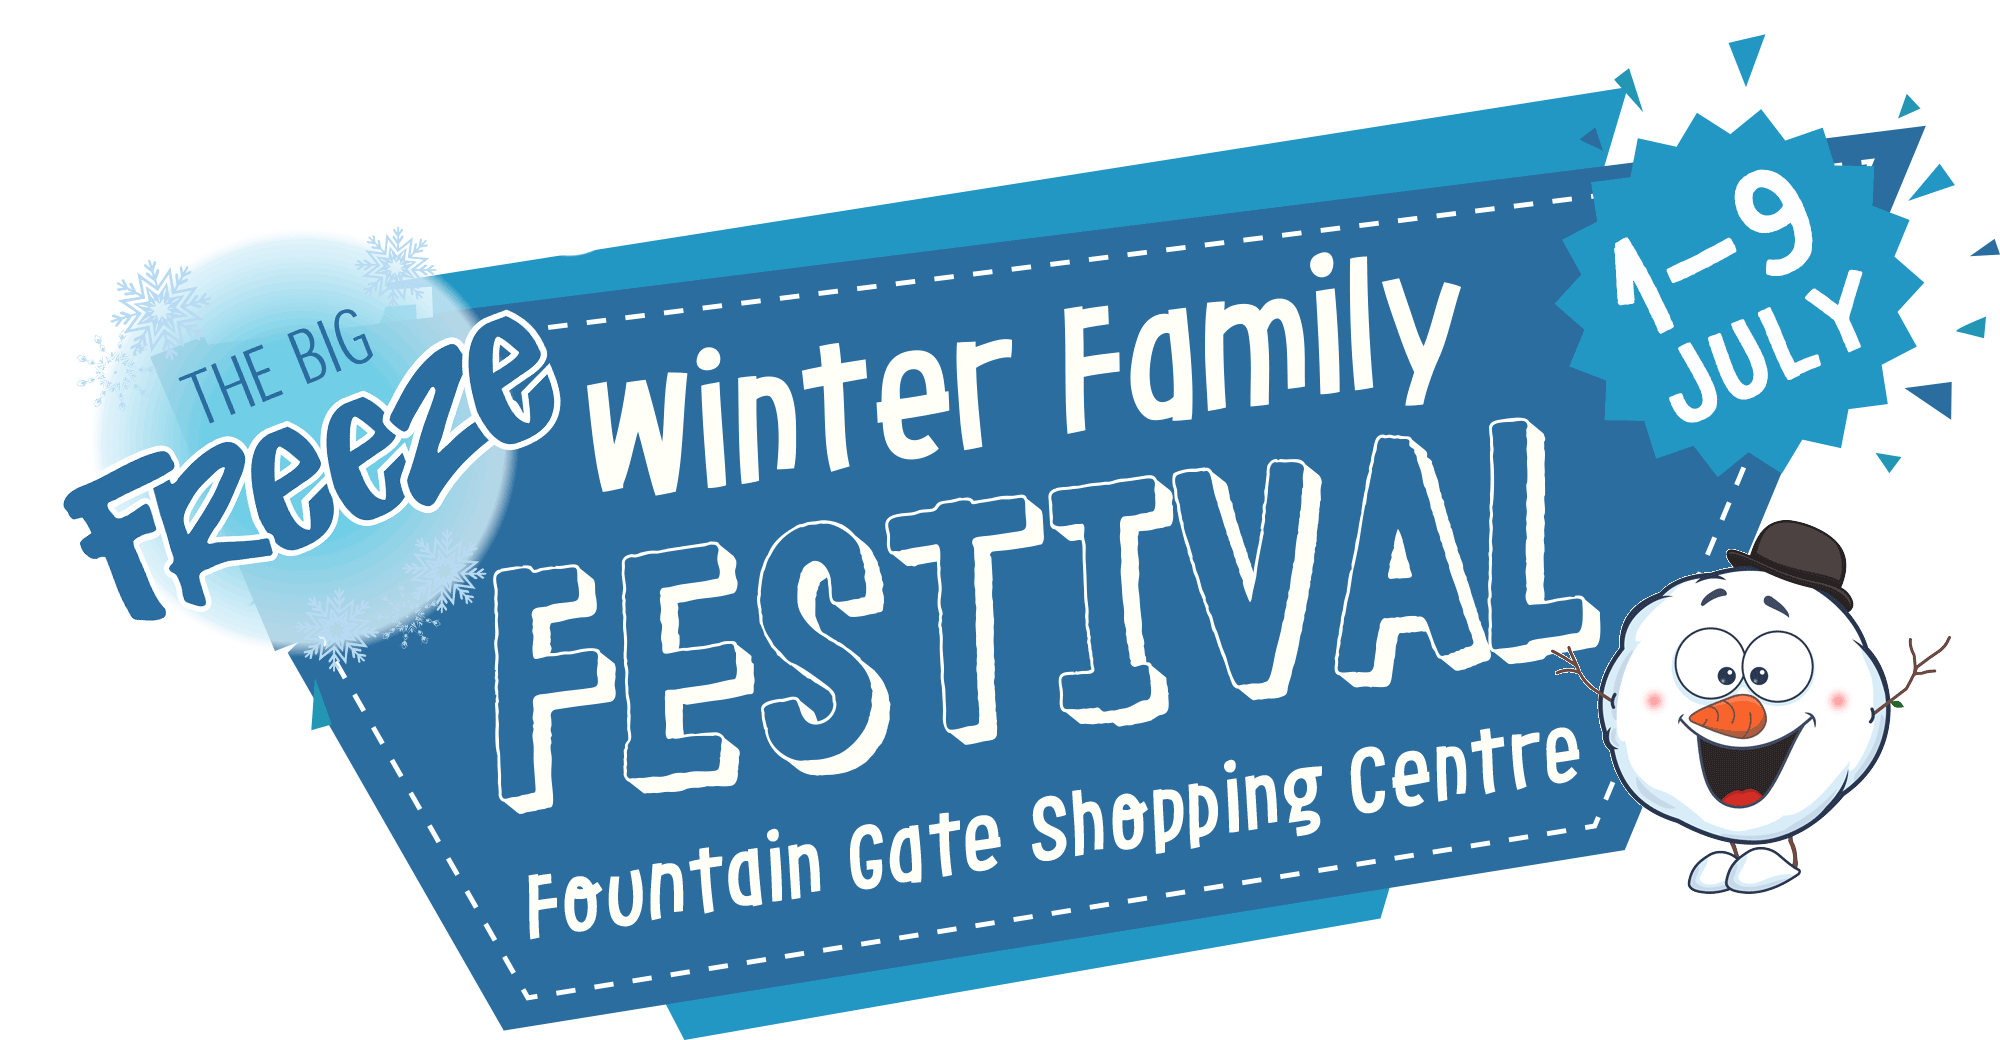 Tickets for The Big Freeze Winter Family Festival in Fountain Gate from Ticketbooth